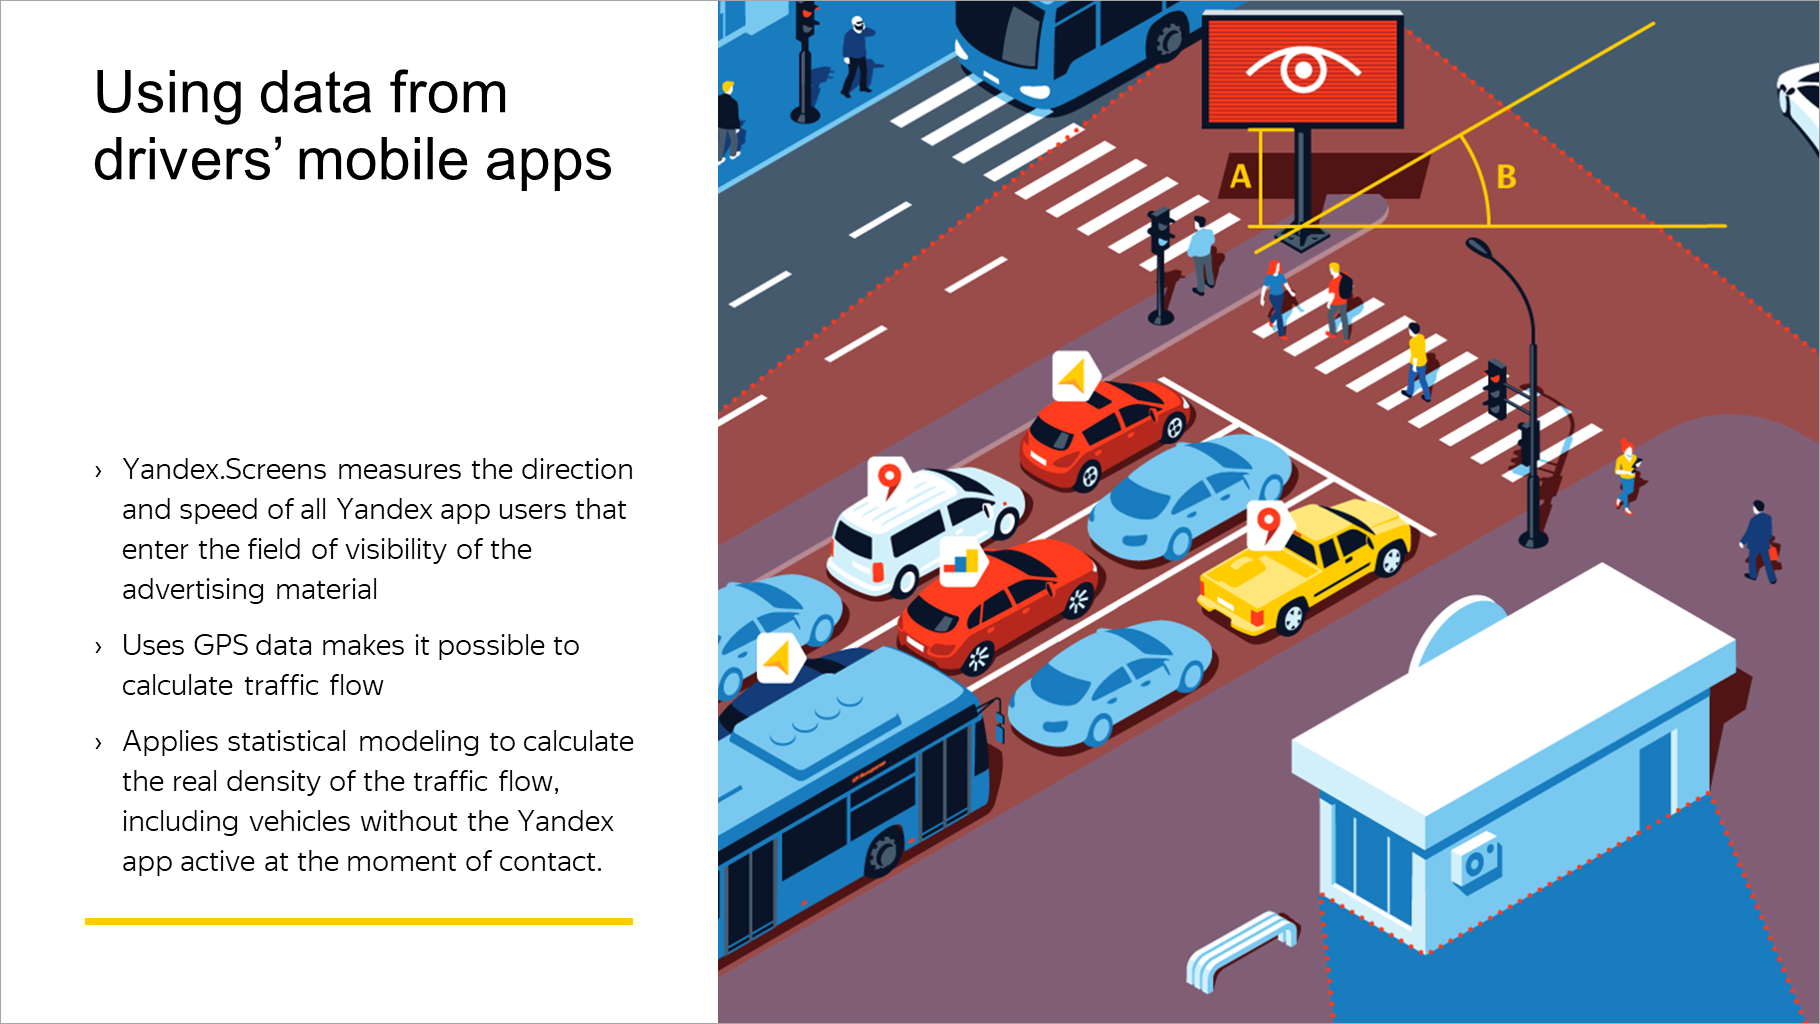 Using data from drivers' mobile apps